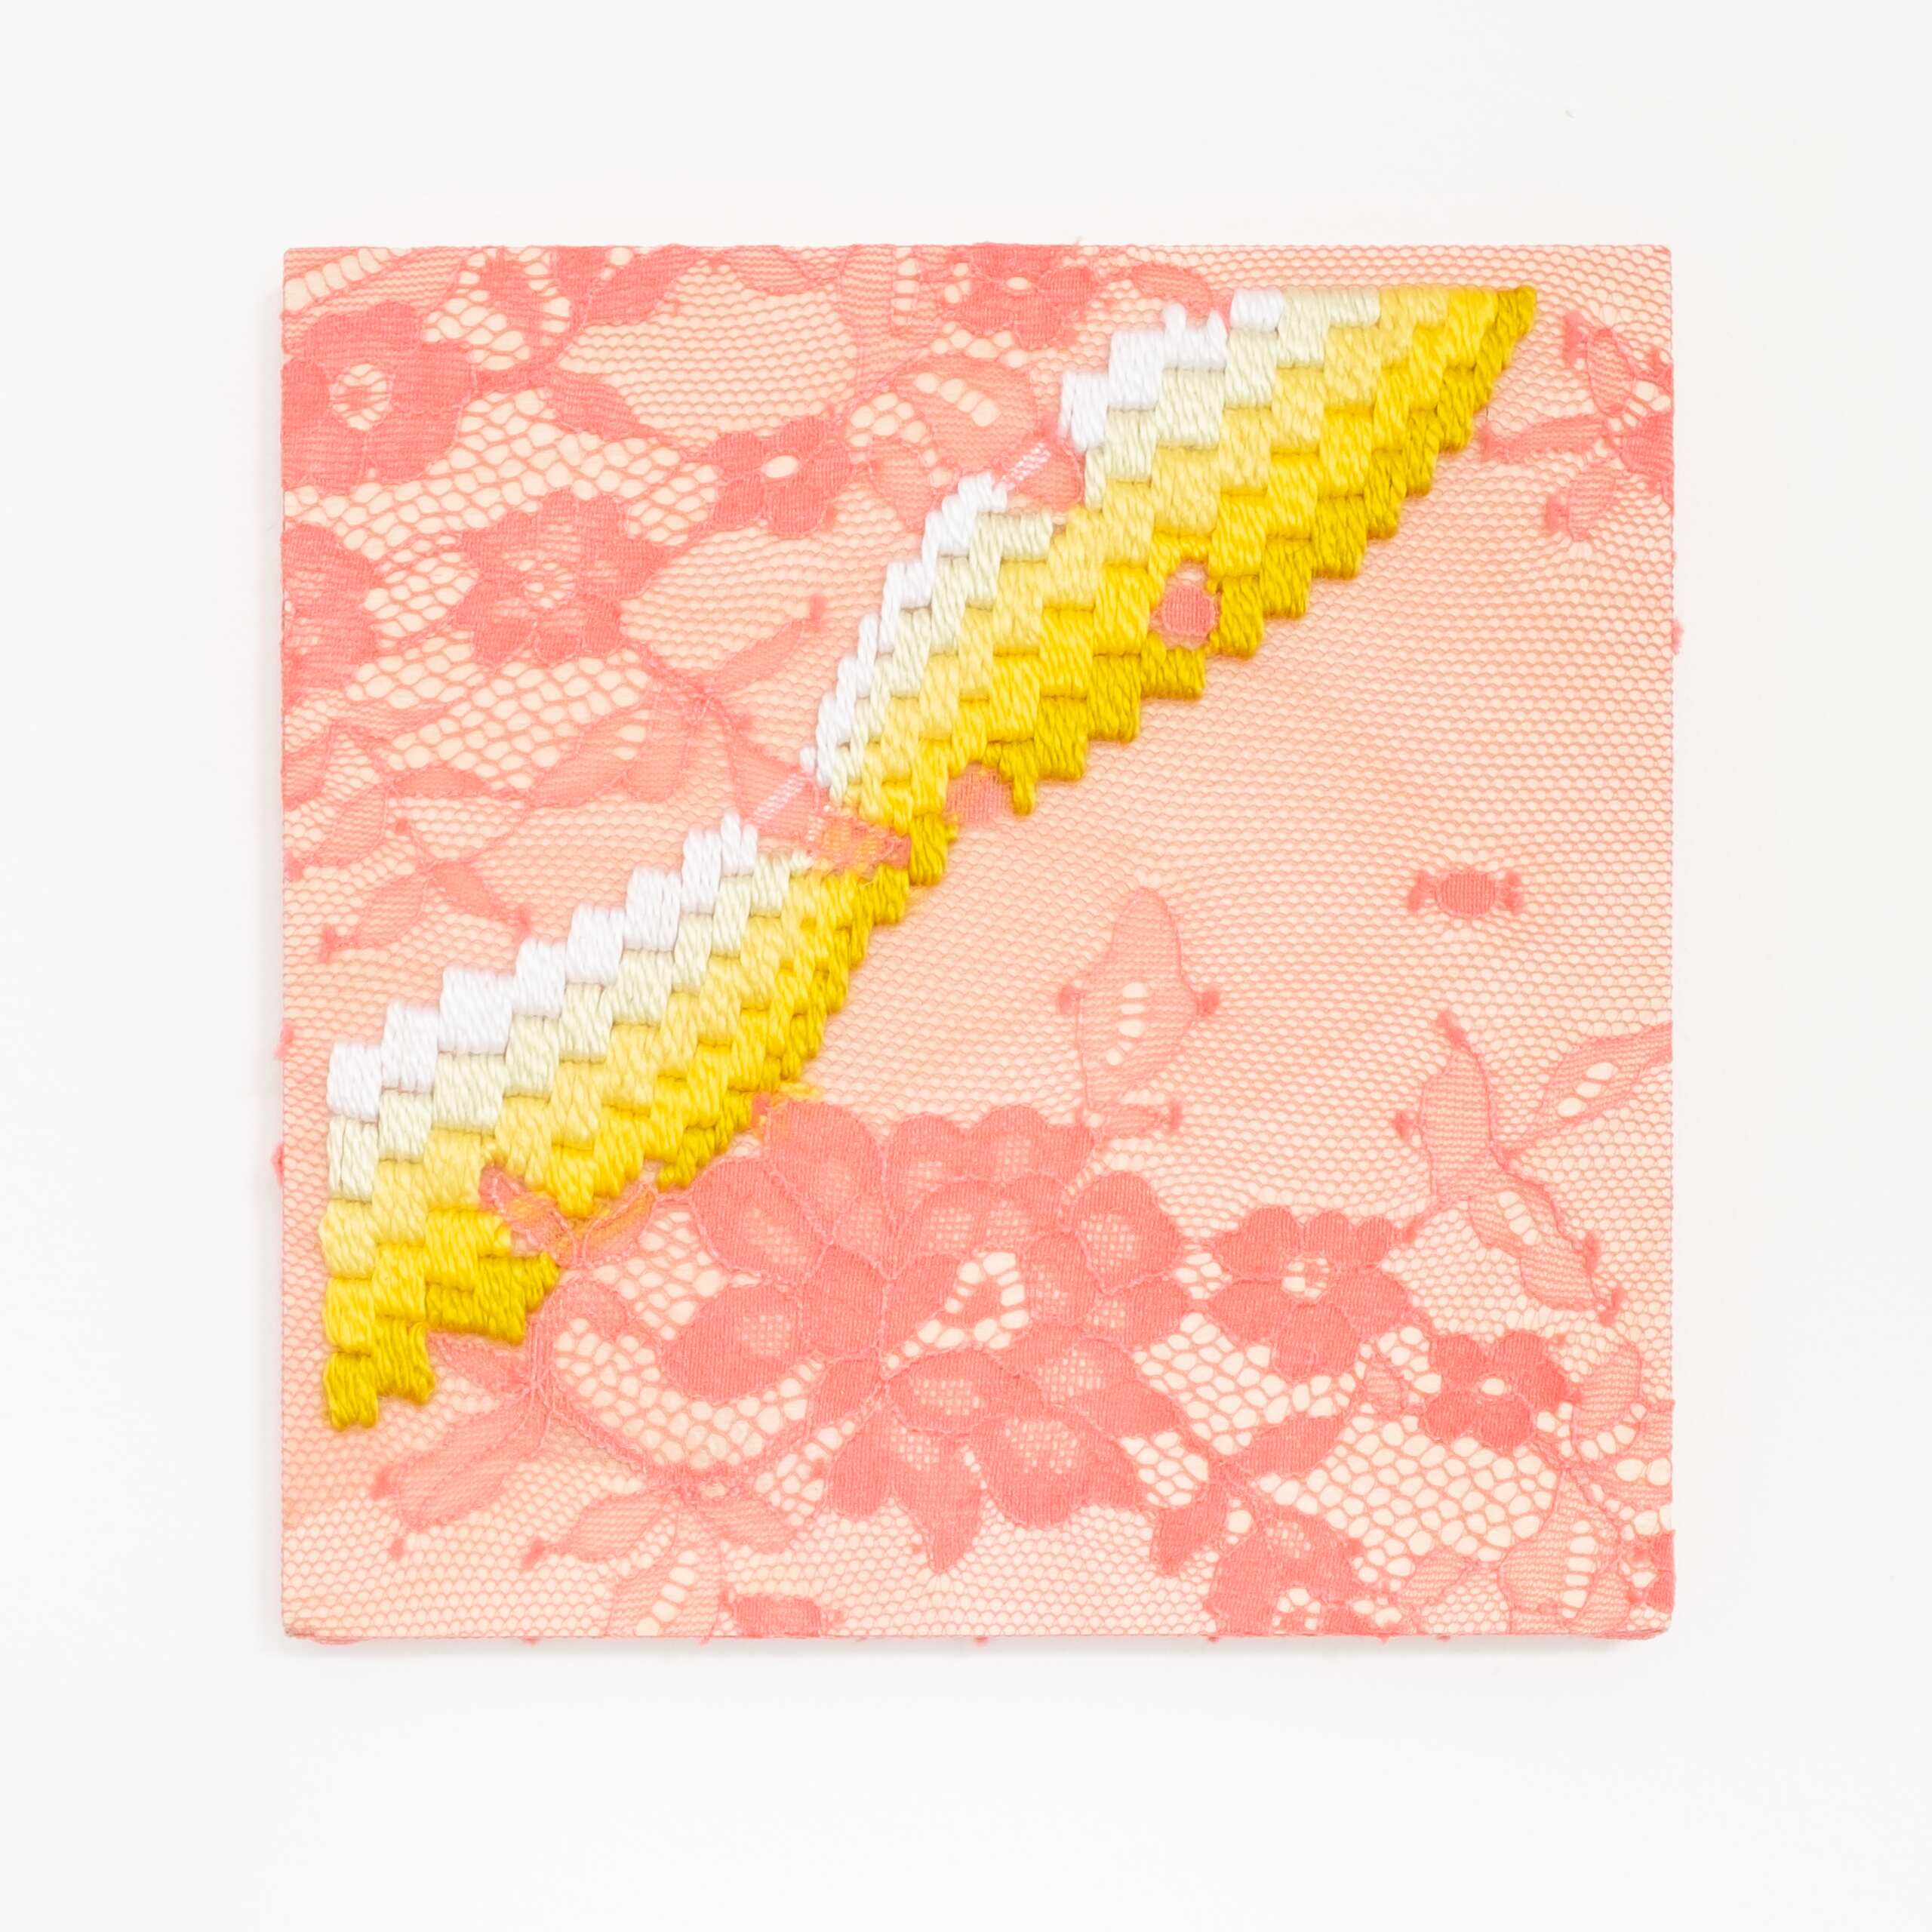 Get a Wiggle on [yellow], Hand-embroidered silk thread on lace over plywood panel, 2020